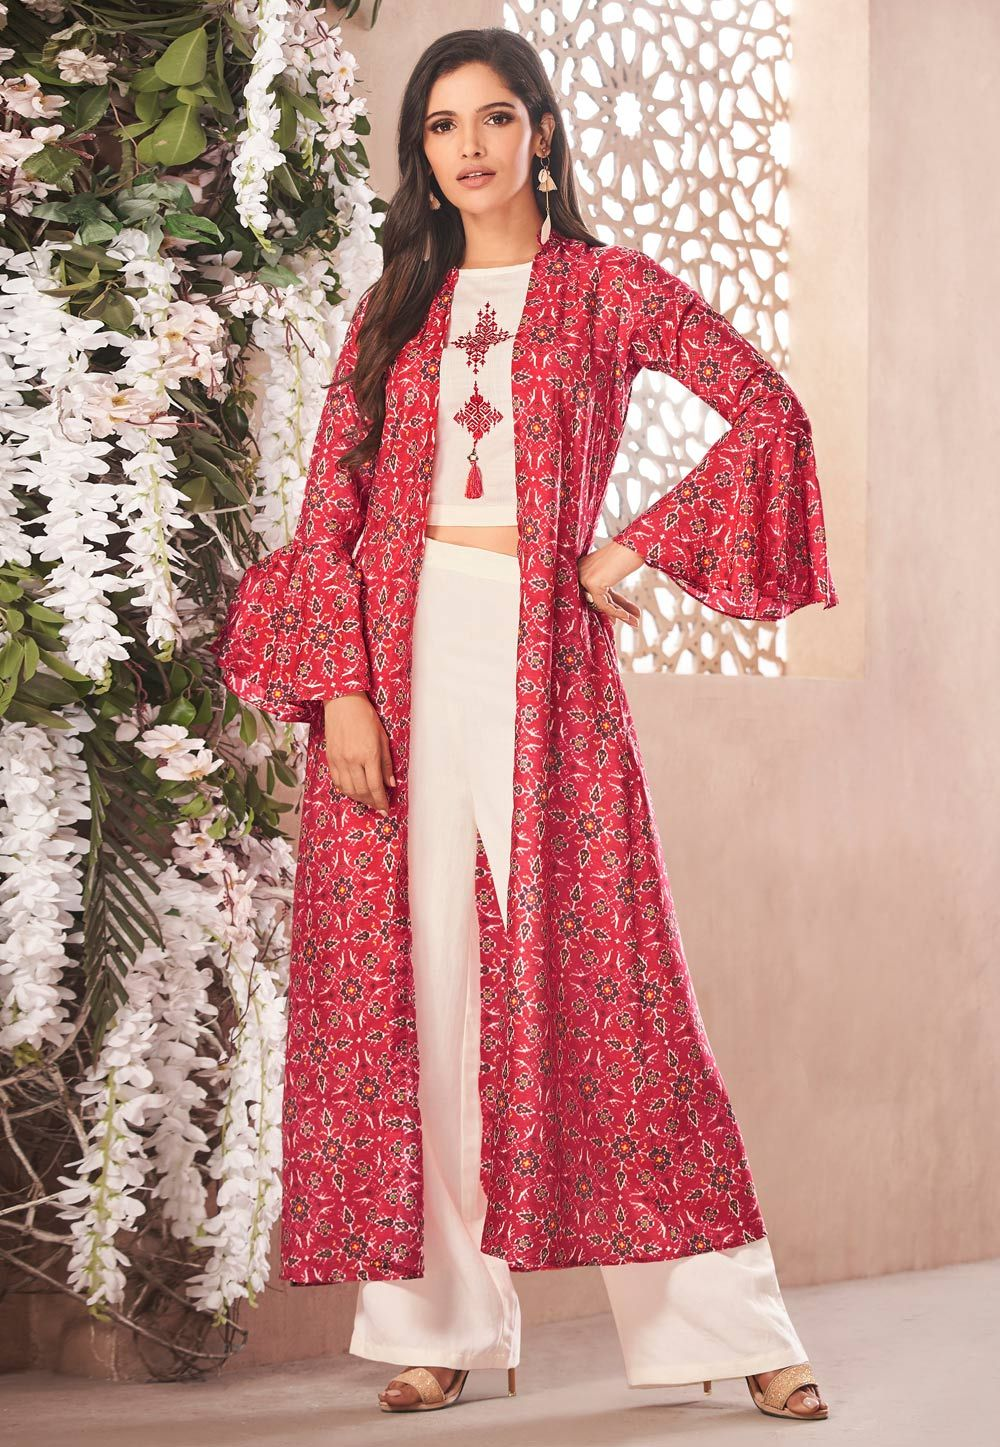 672ffeba0f Buy Off White Rayon Readymade Kameez With Palazzo and Jacket 157563 online  at lowest price from huge collection of salwar kameez at  Indianclothstore.com.